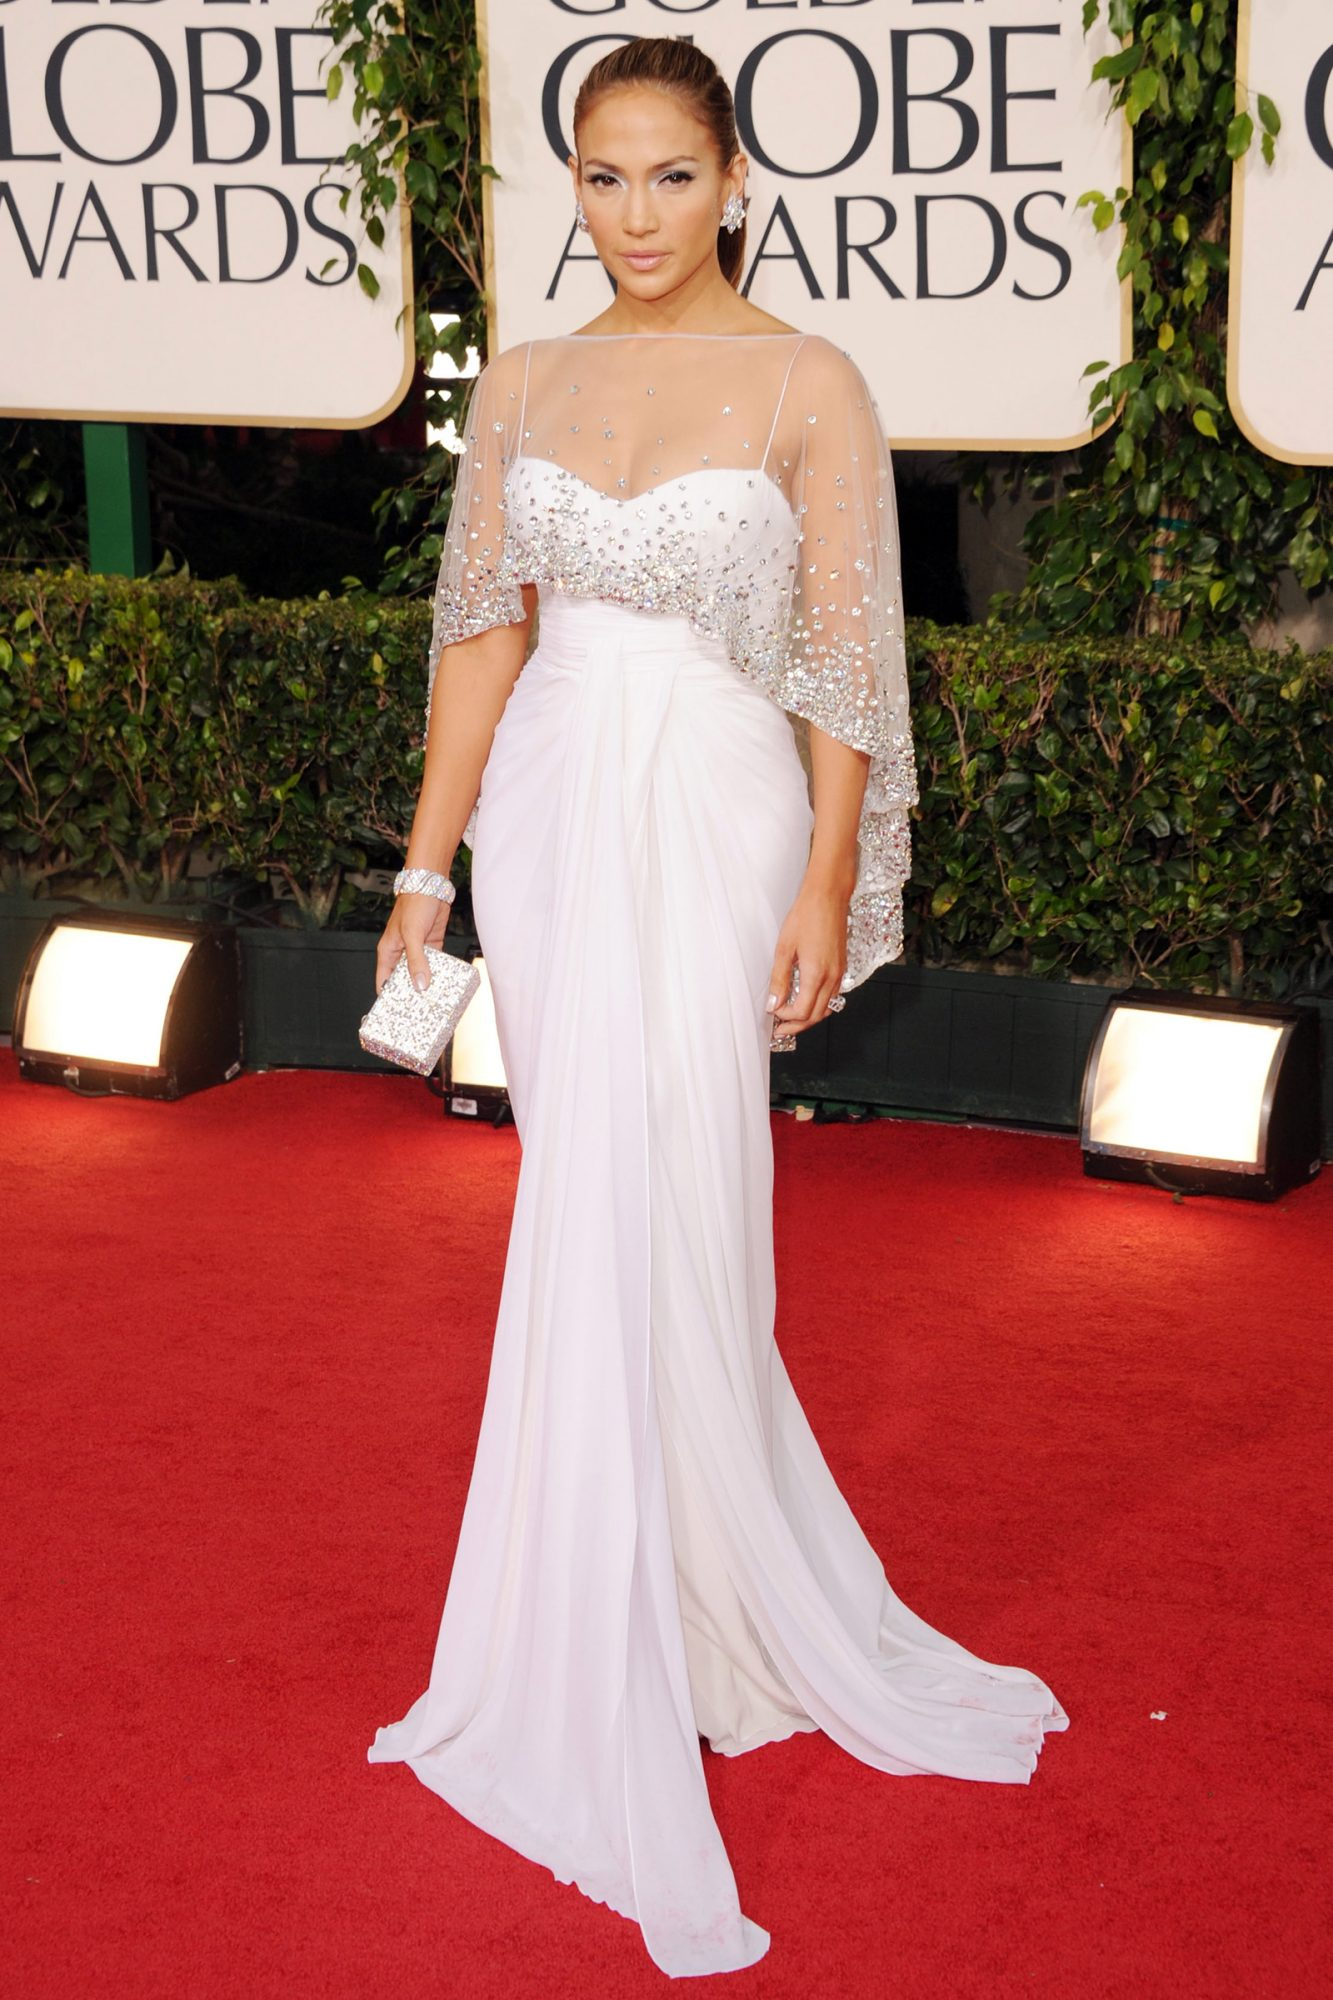 Jennifer Lopez arrives at the 68th Annual Golden Globe Awards held at The Beverly Hilton hotel on January 16, 2011